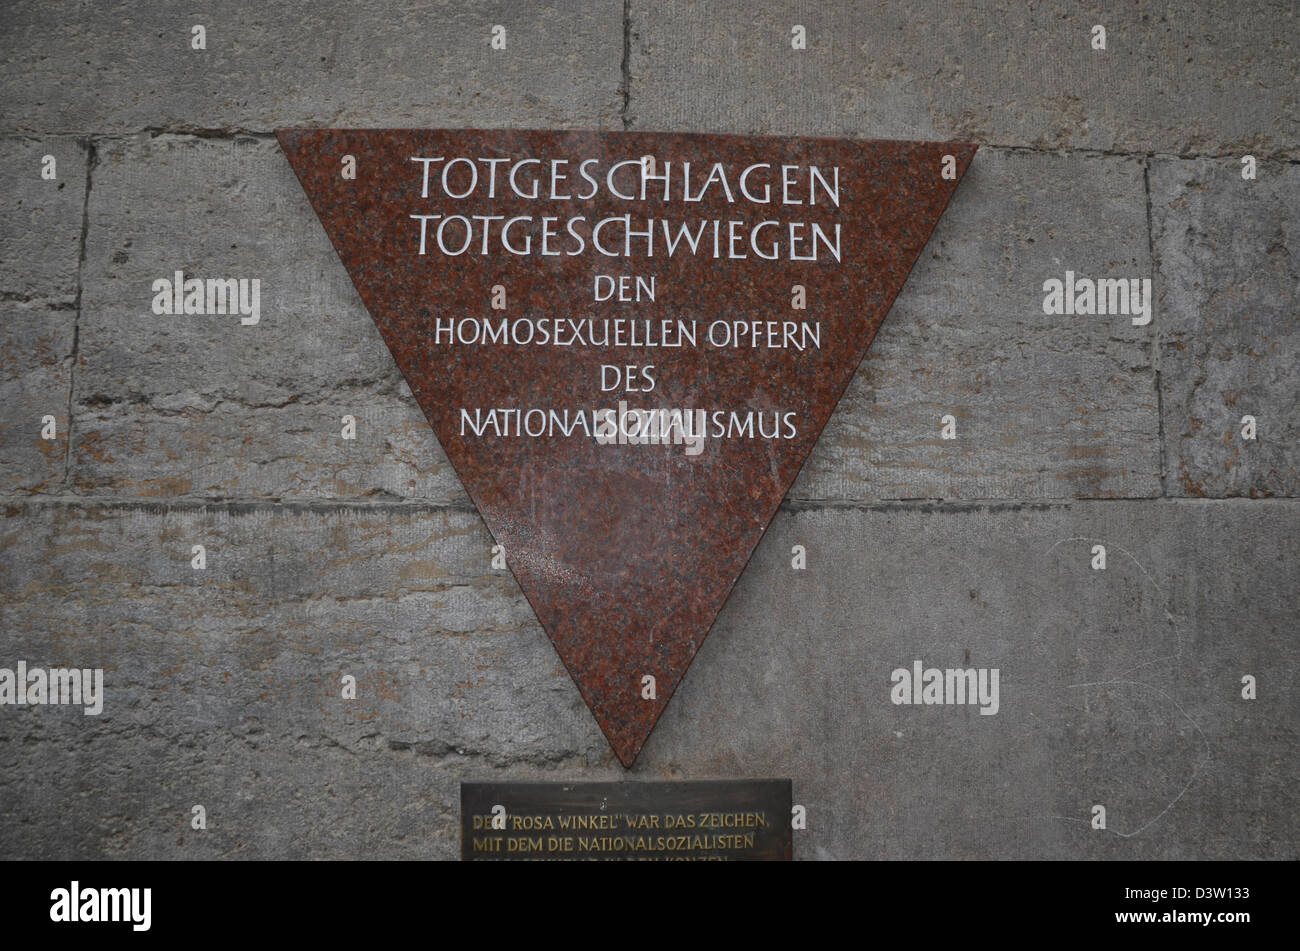 Germany, Berlin, Nollendorfplatz, The gay pink triangle Memorial plaque for the homosexuals murdered by the Nazi regime Stock Photo